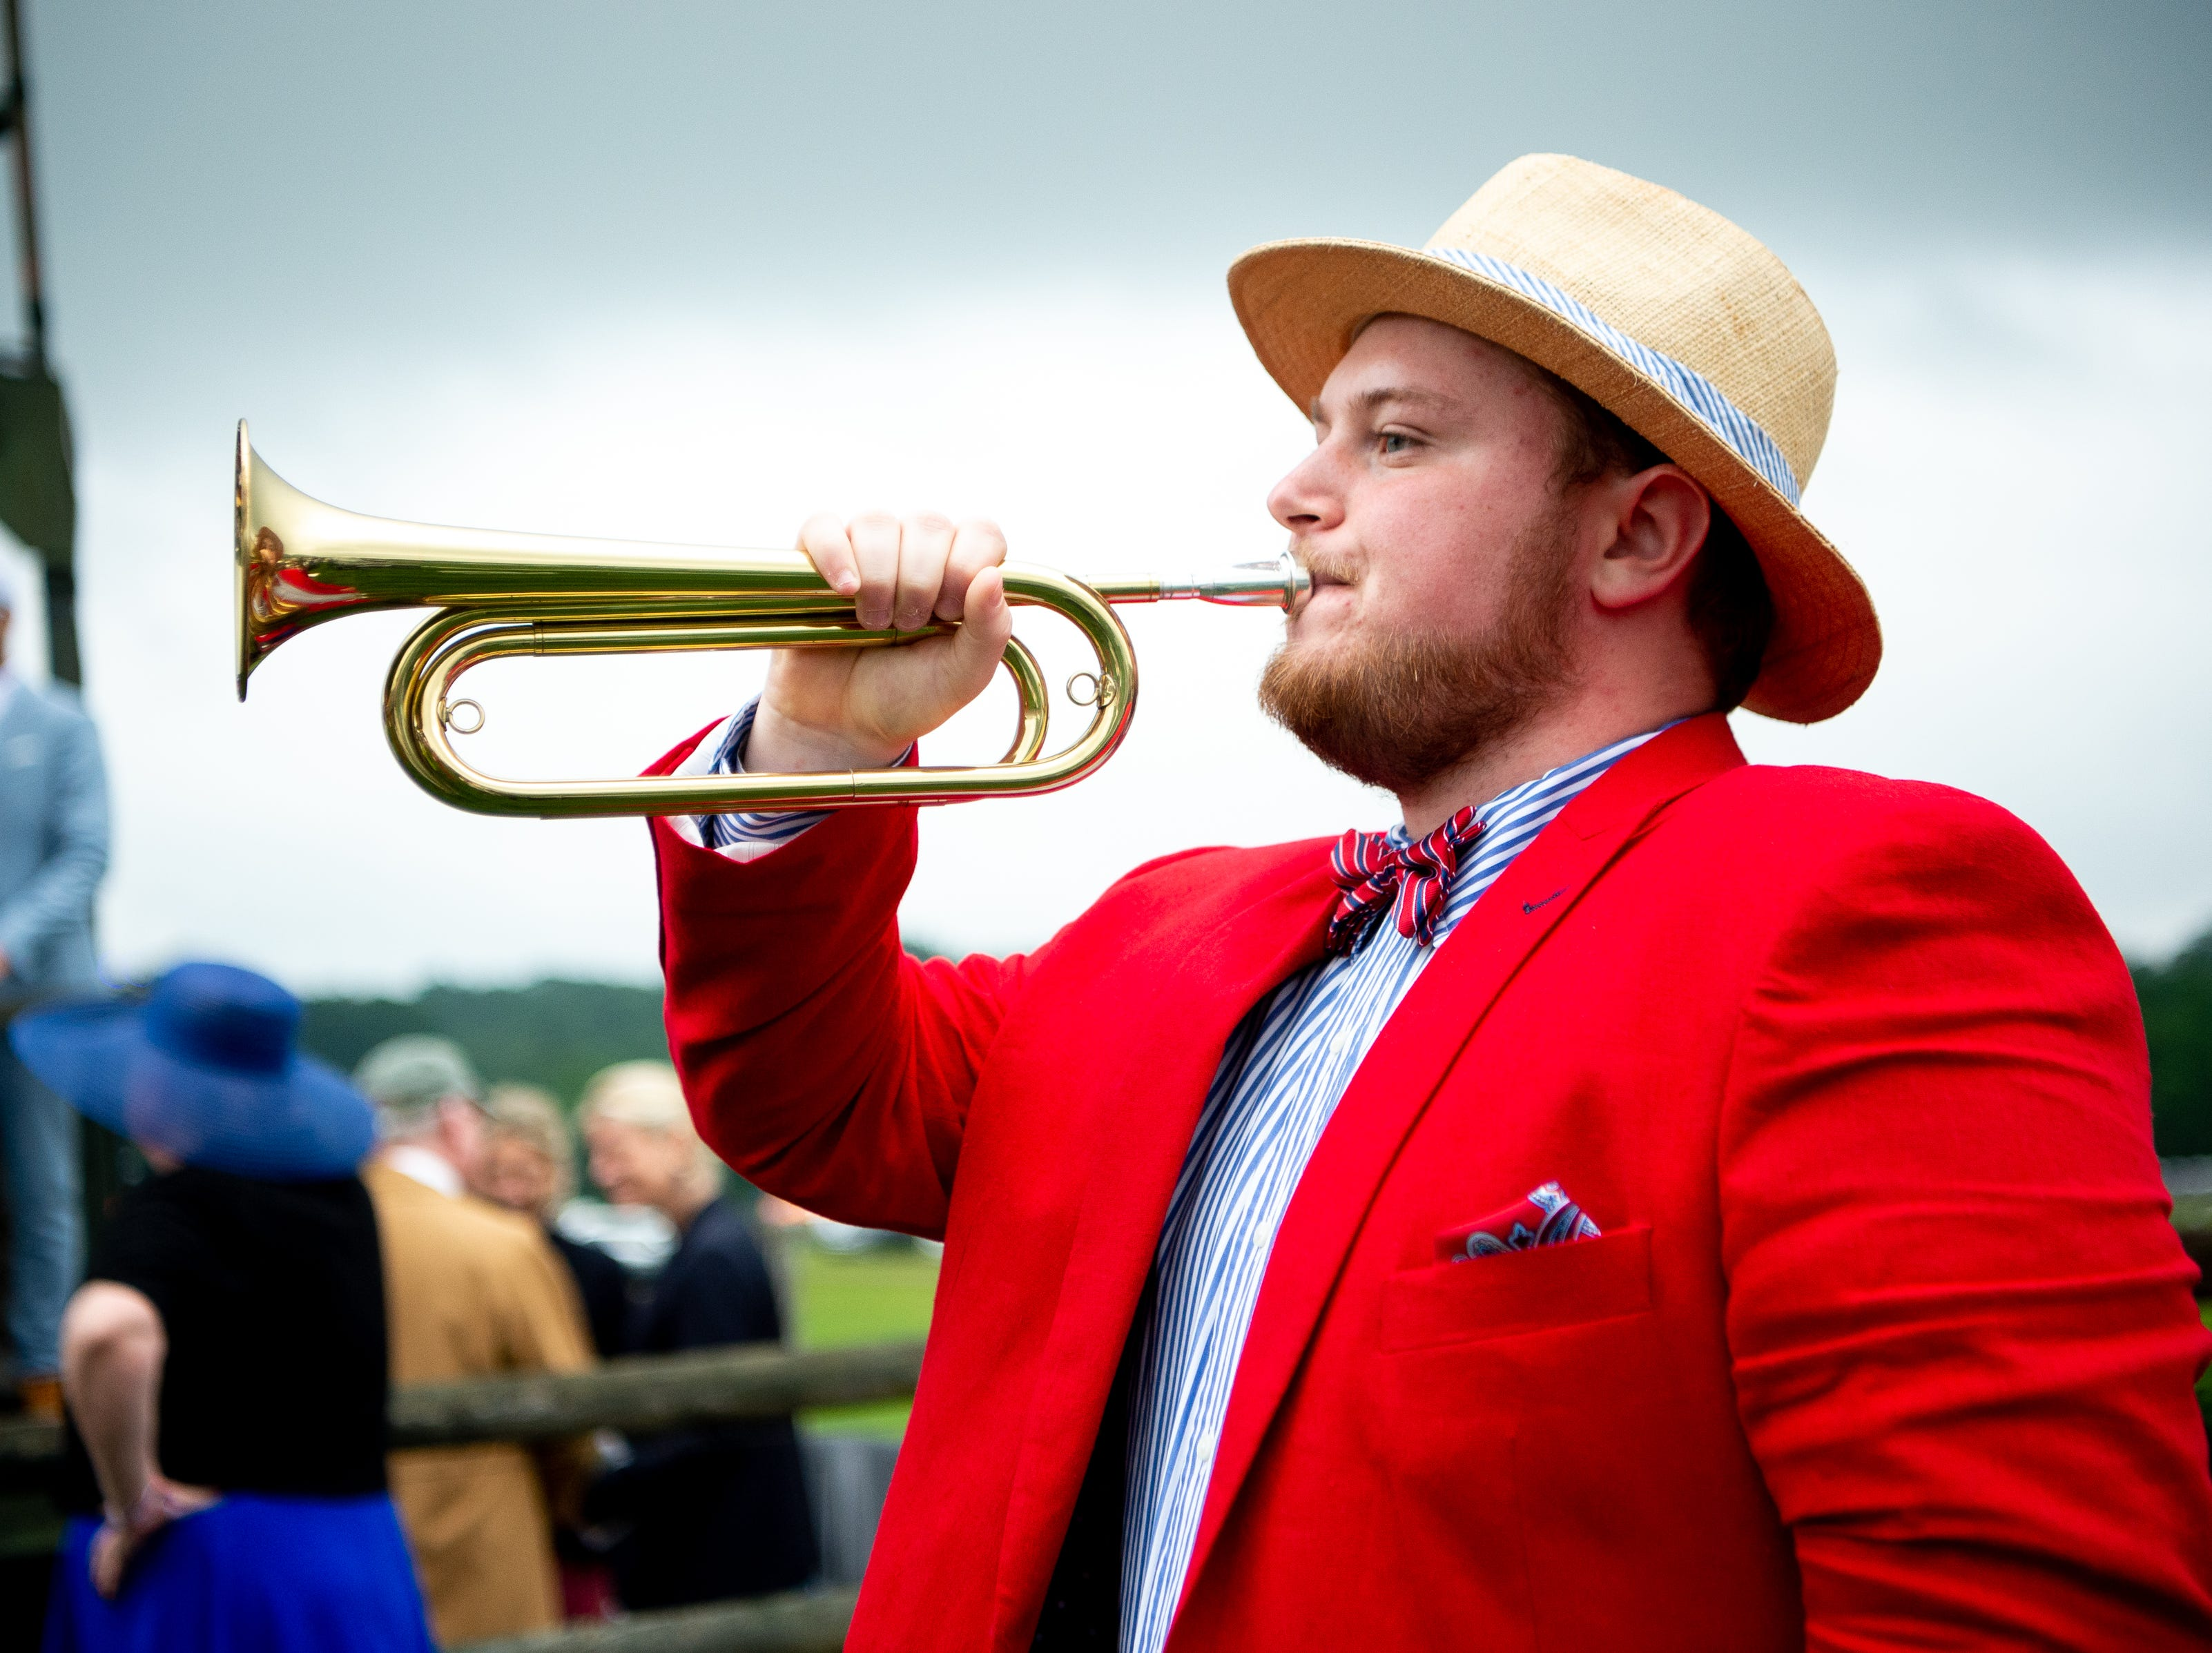 """Samuel Hickerson plays the """"Call to Post"""" before the fifth race of the Iroquois Steeplechase at Percy Warner Park Saturday, May 11, 2019, in Nashville, Tenn."""